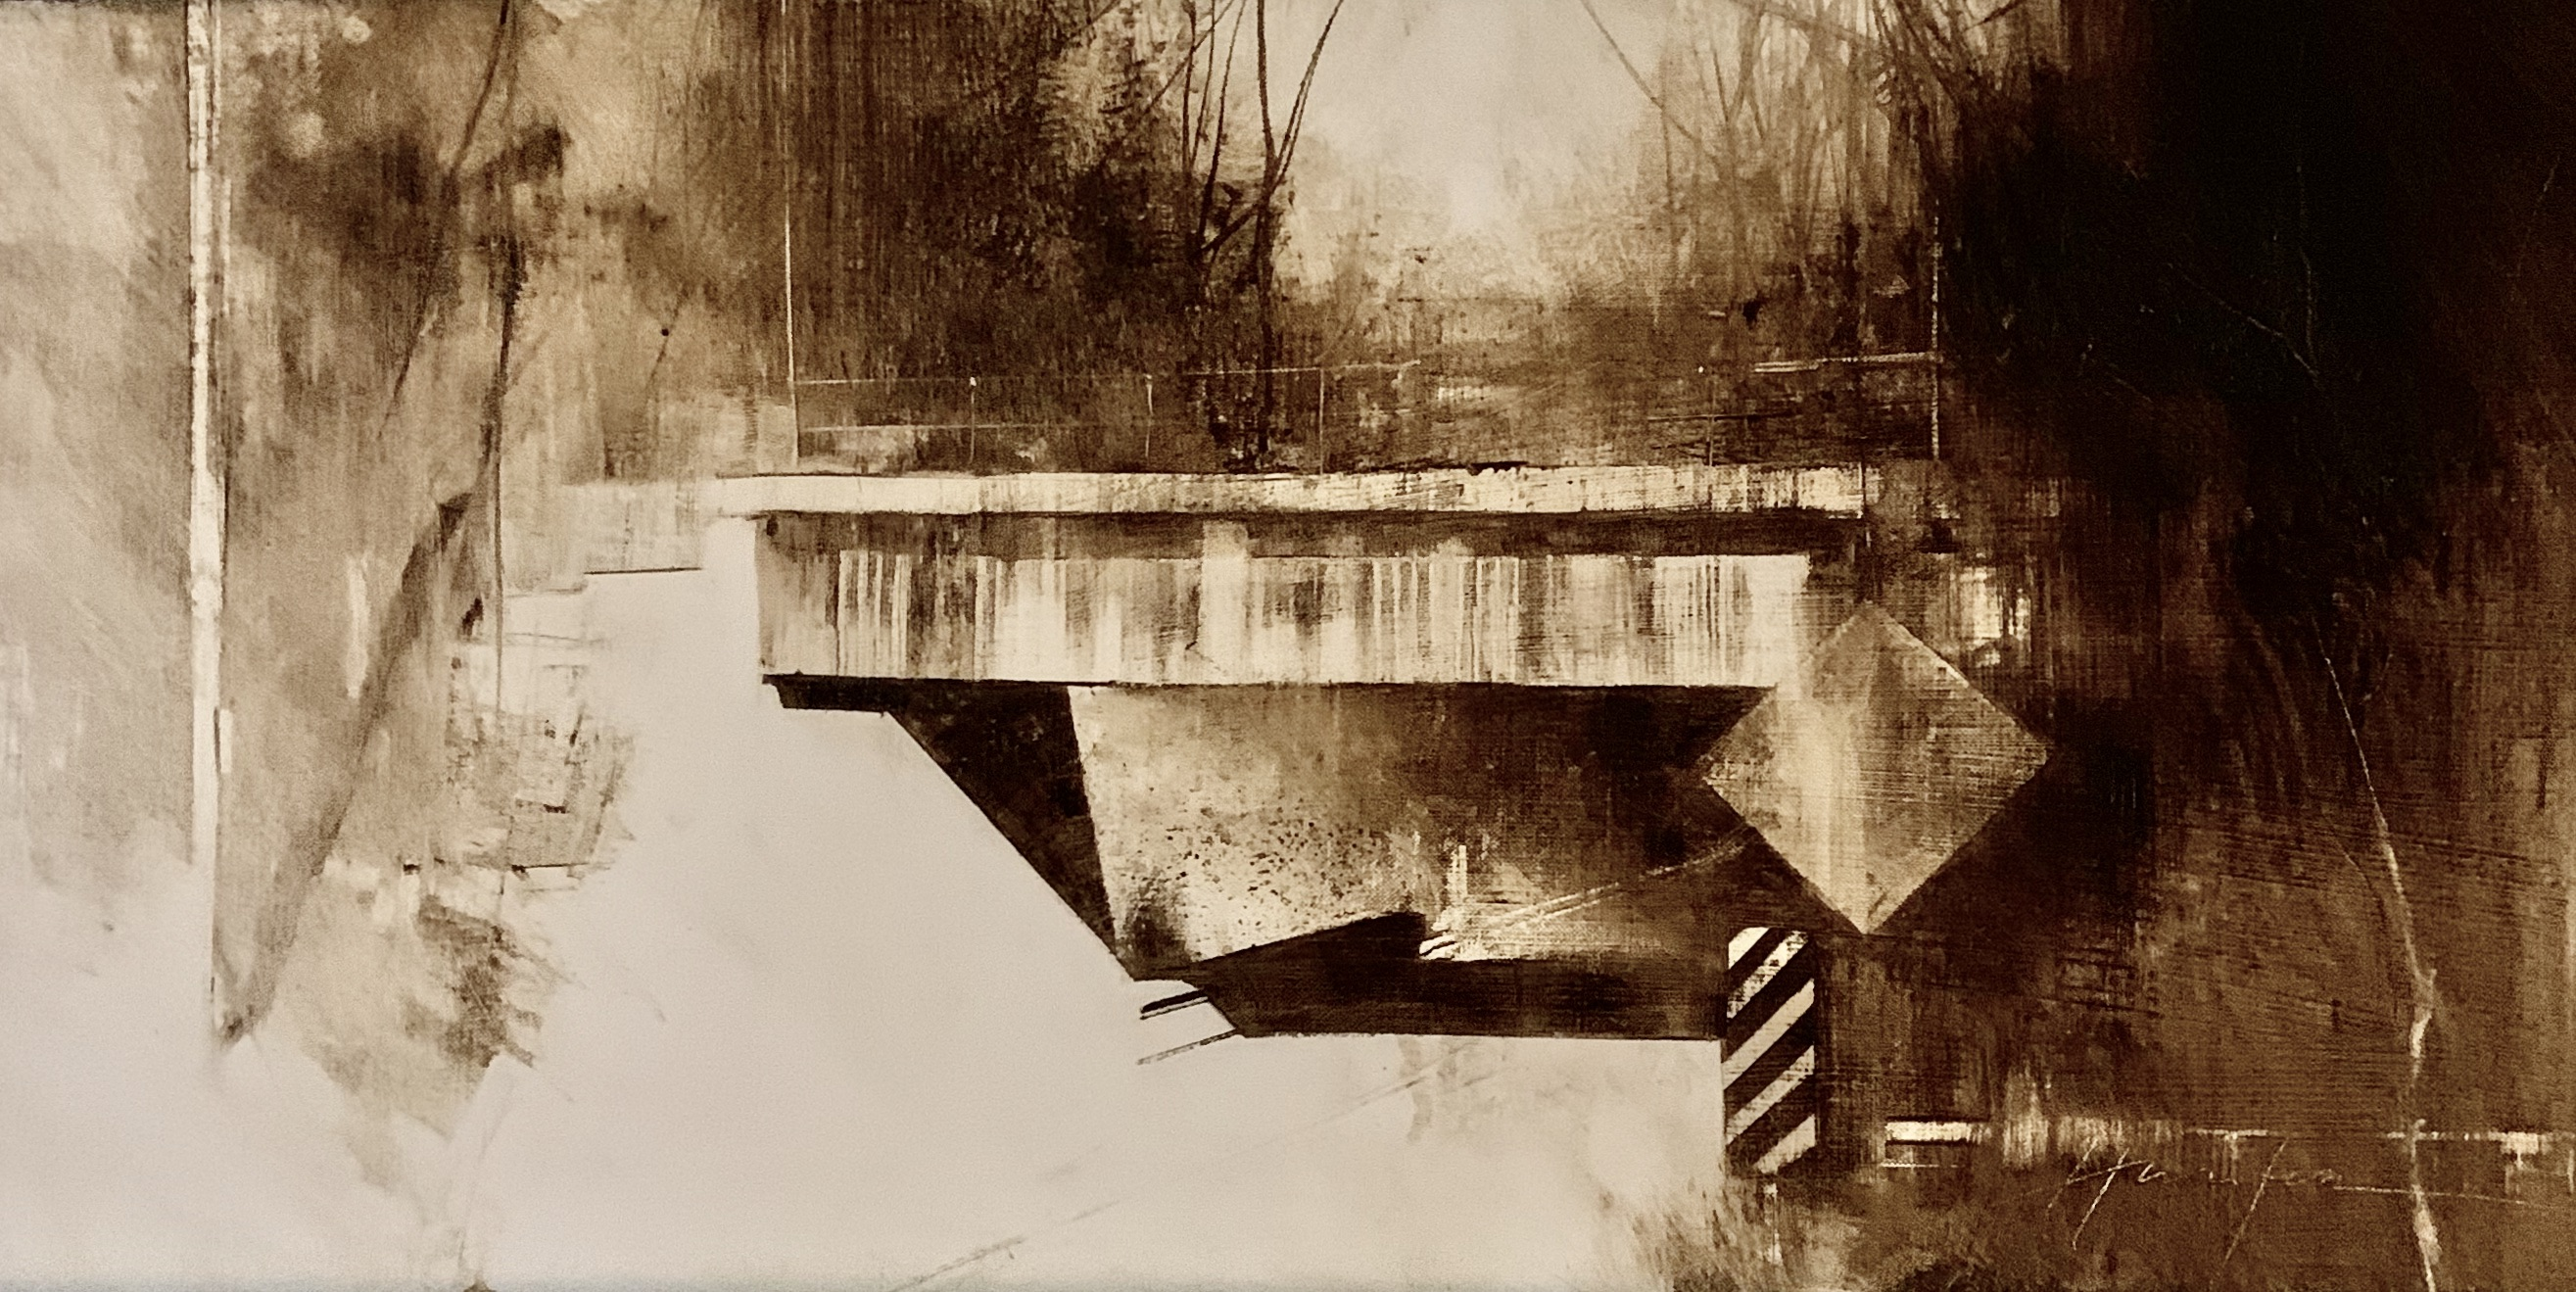 Abandoned Railroad Overpass-Hunter 12x24 $2850